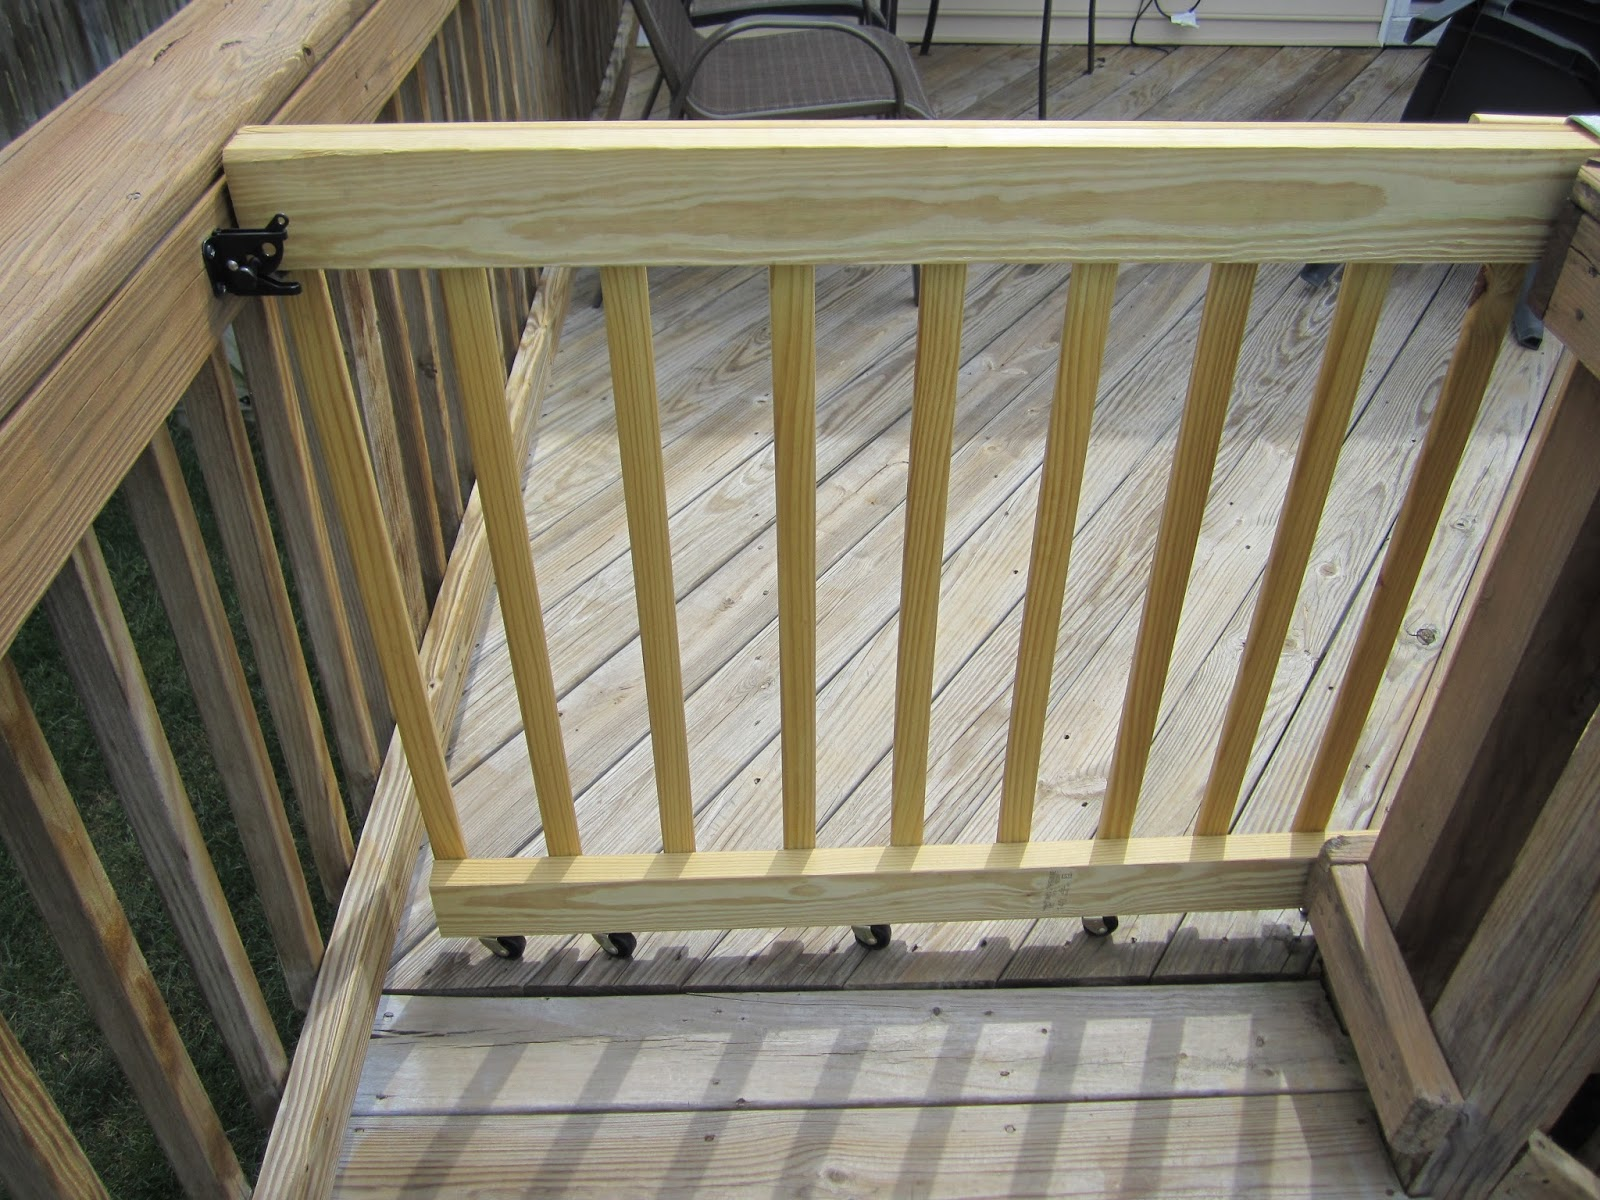 My jobs diy a sliding gate for deck